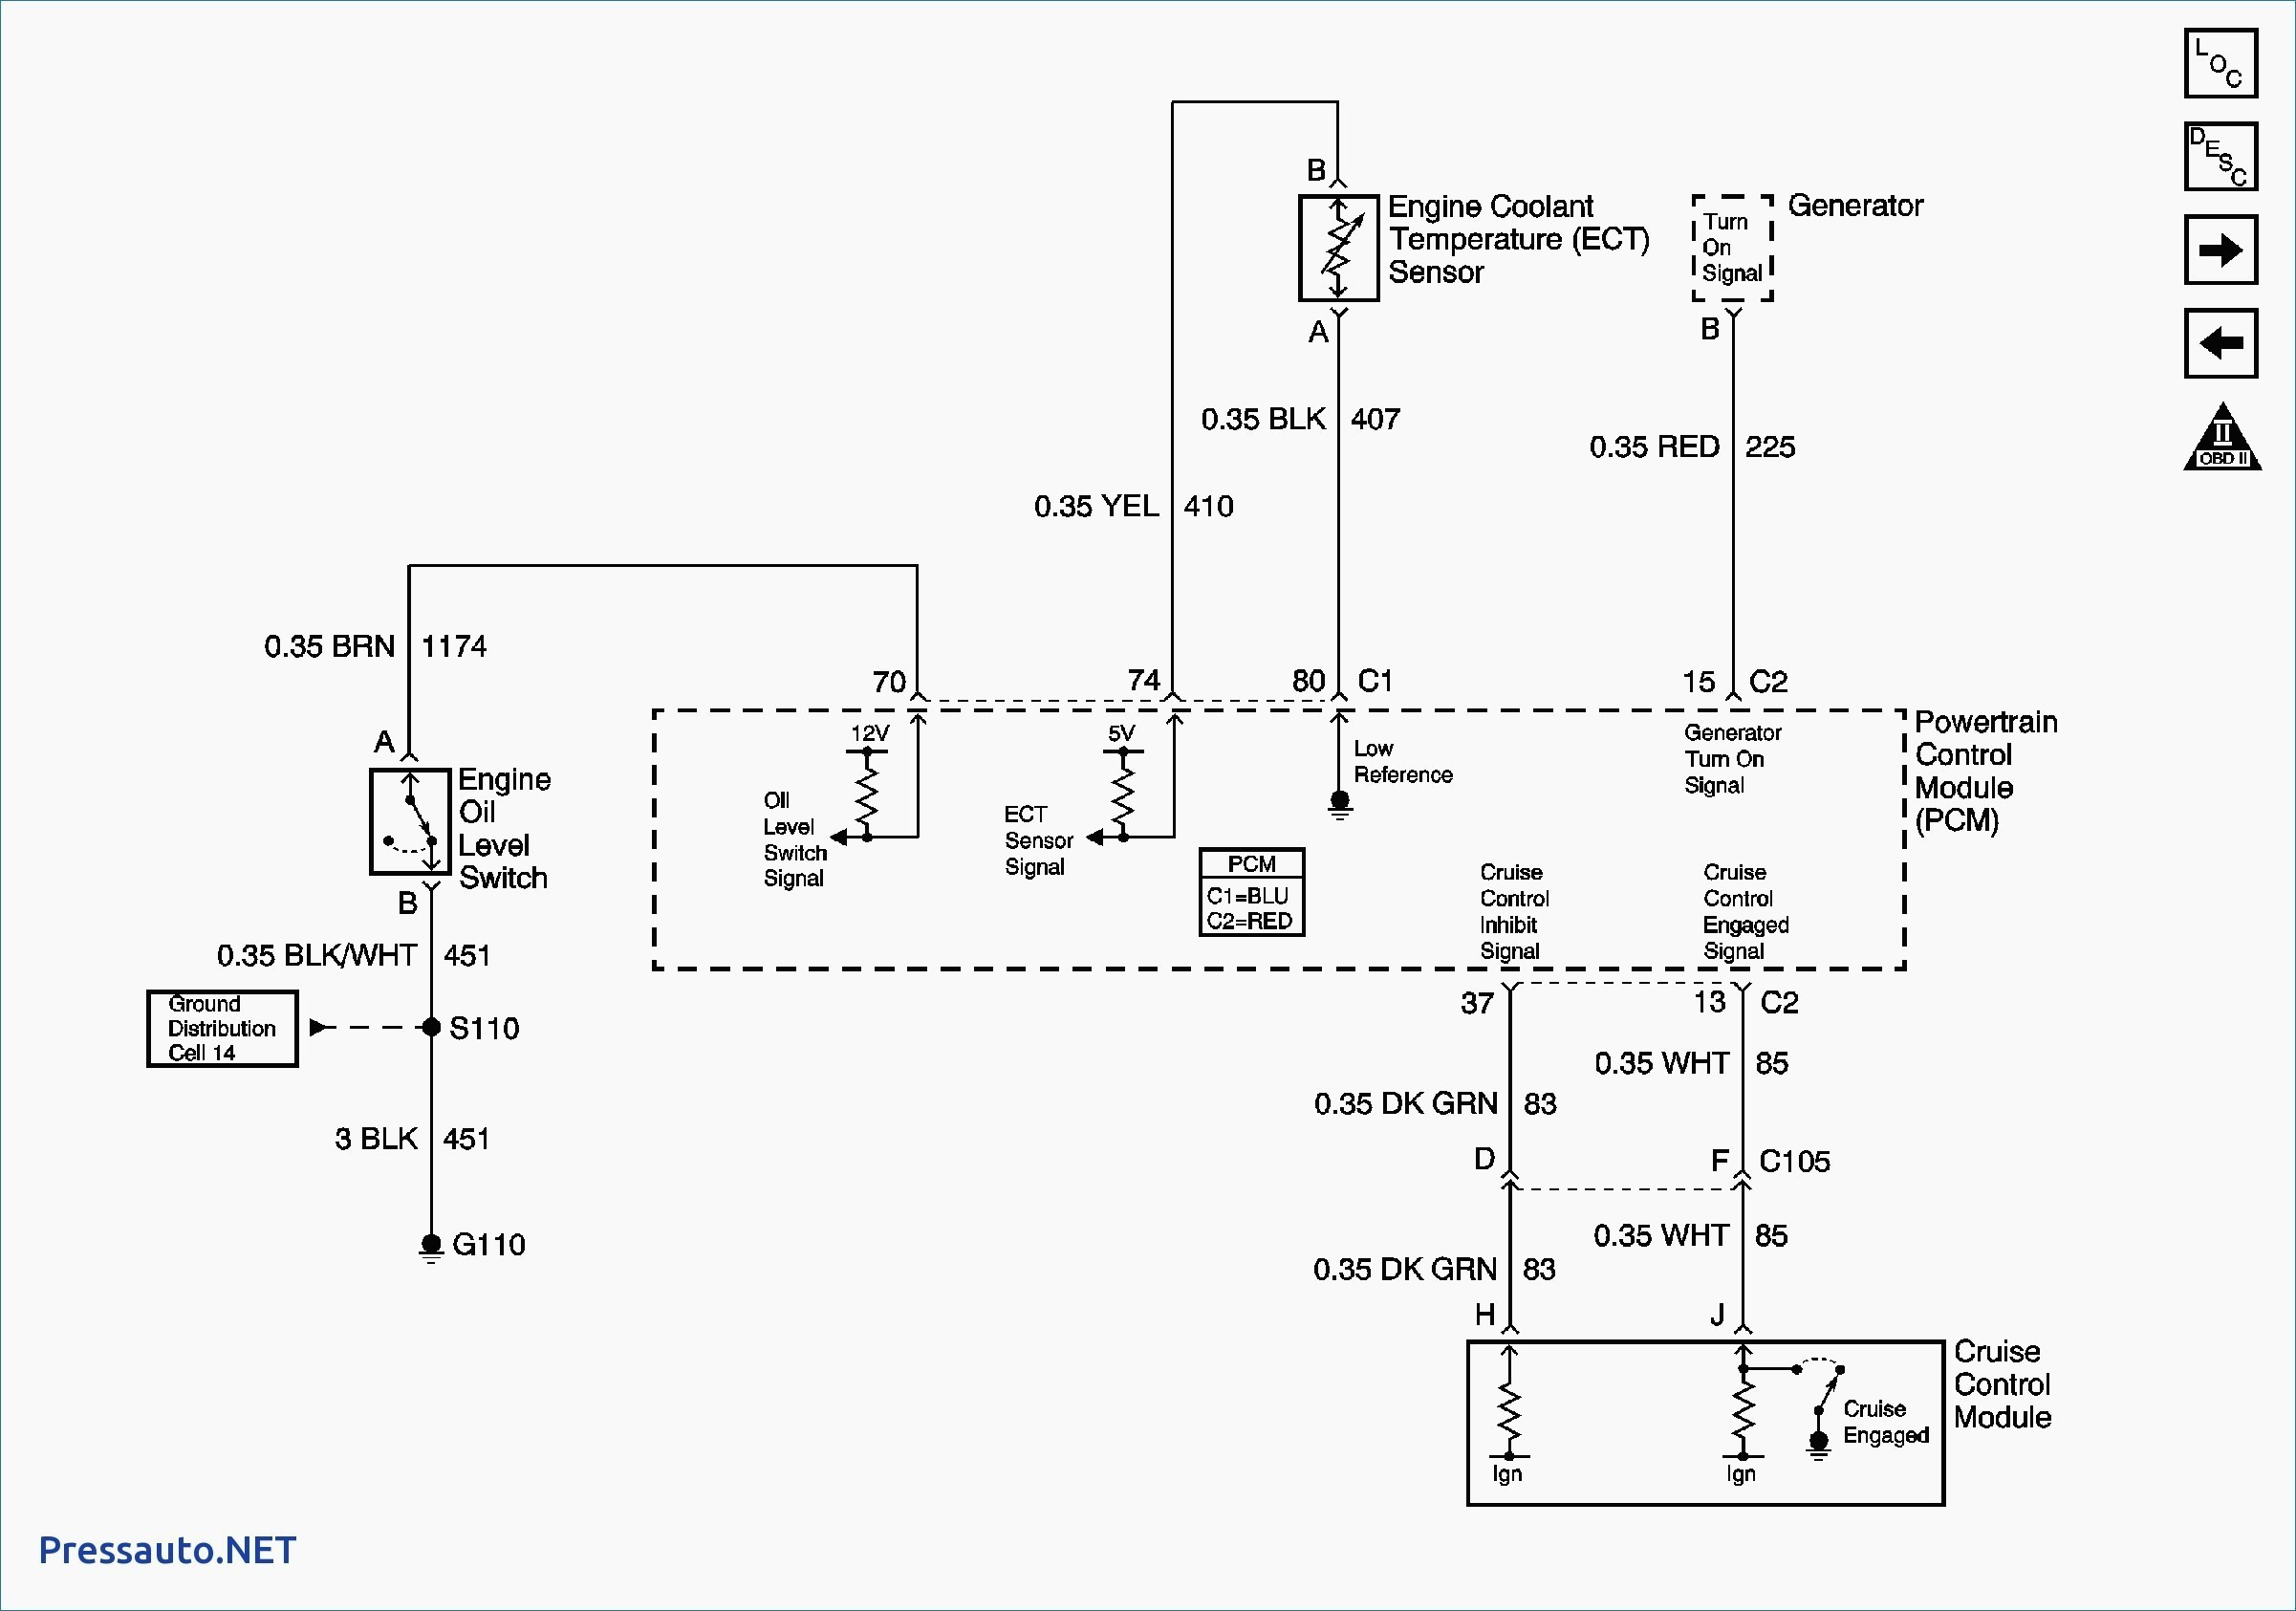 Well Pressure Switch Wiring Diagram Square D Pressure Switch Wiring Diagram Awesome Wiring Diagram Of Well Pressure Switch Wiring Diagram Ceiling Fan Wire Diagram Inspirational Ceiling Fan Light Wiring